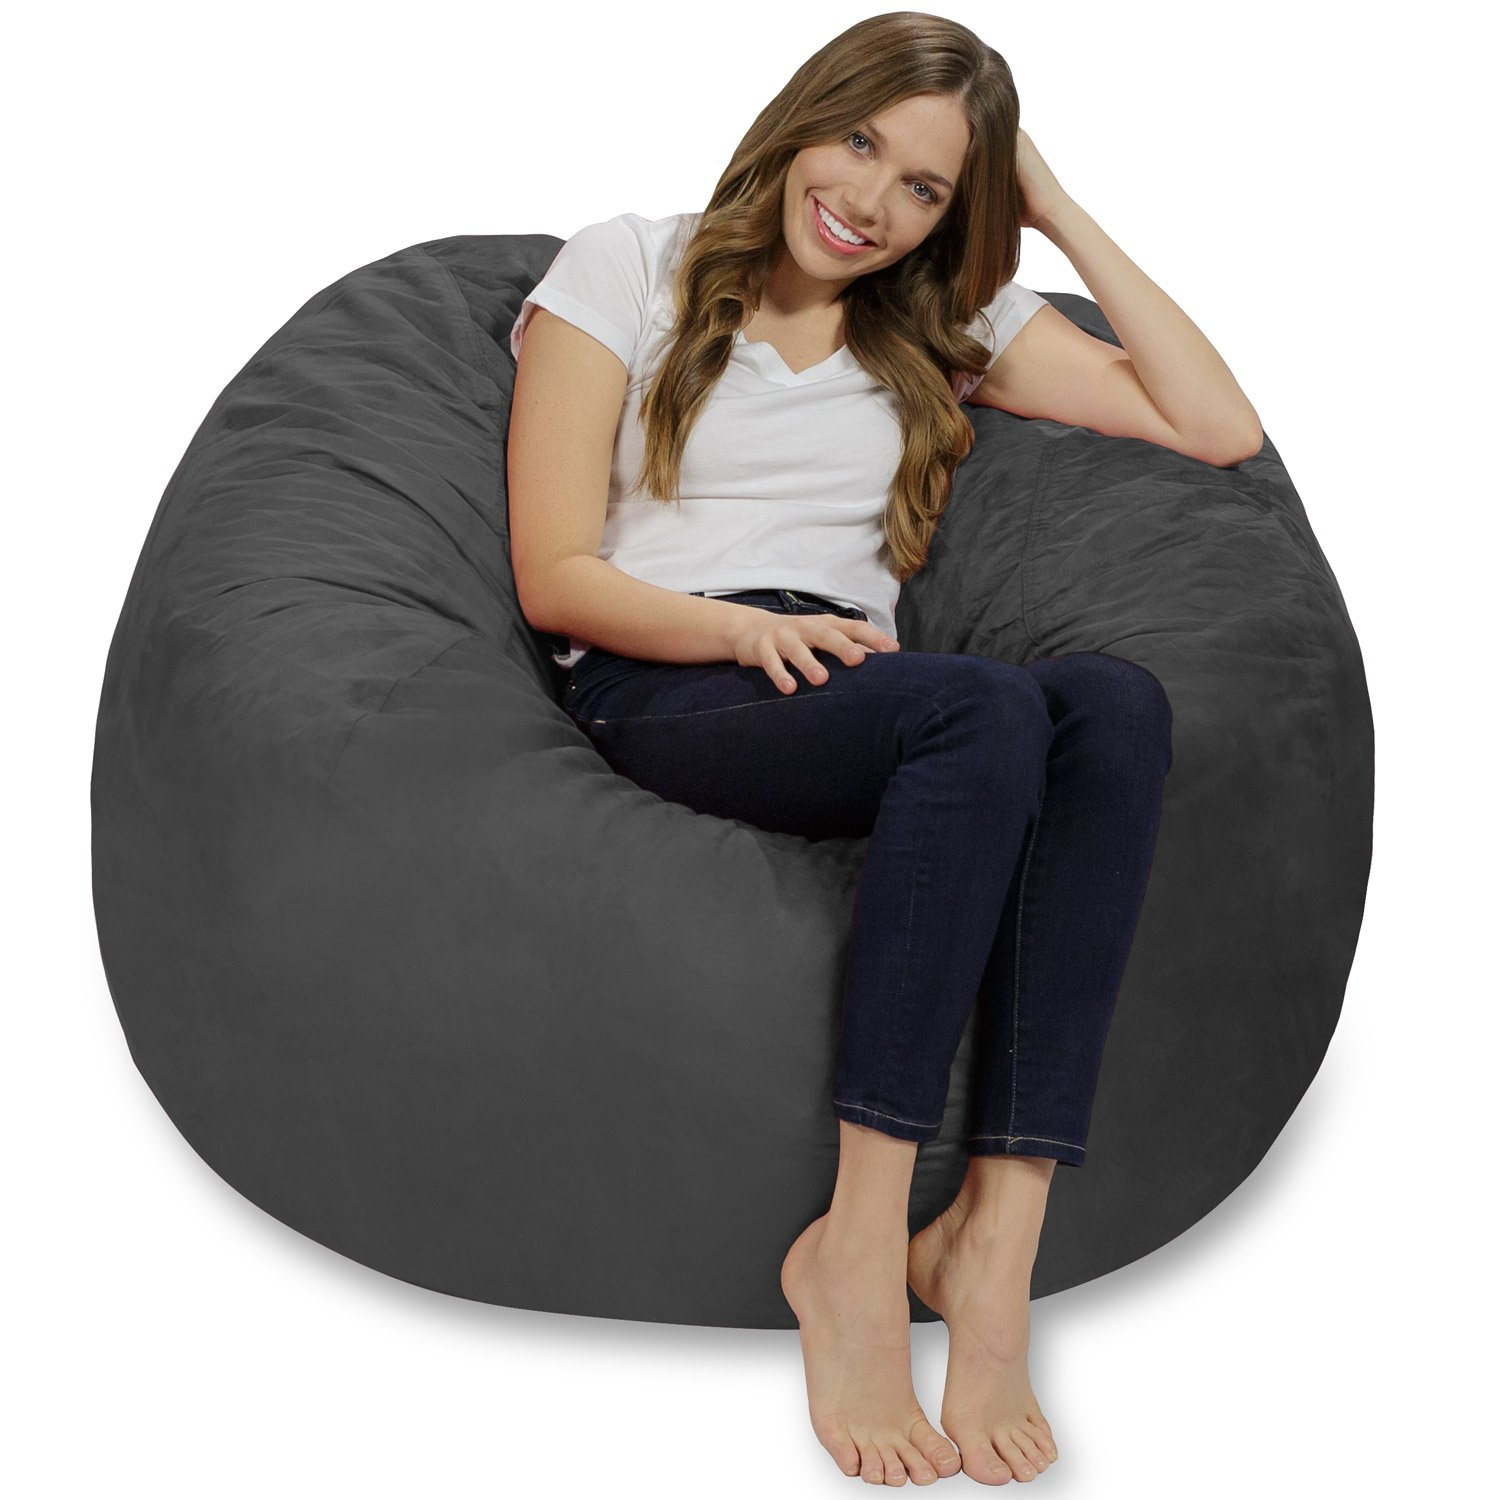 Merveilleux Chill Sack Memory Foam Bean Bag Chair, 4 Feet, Charcoal